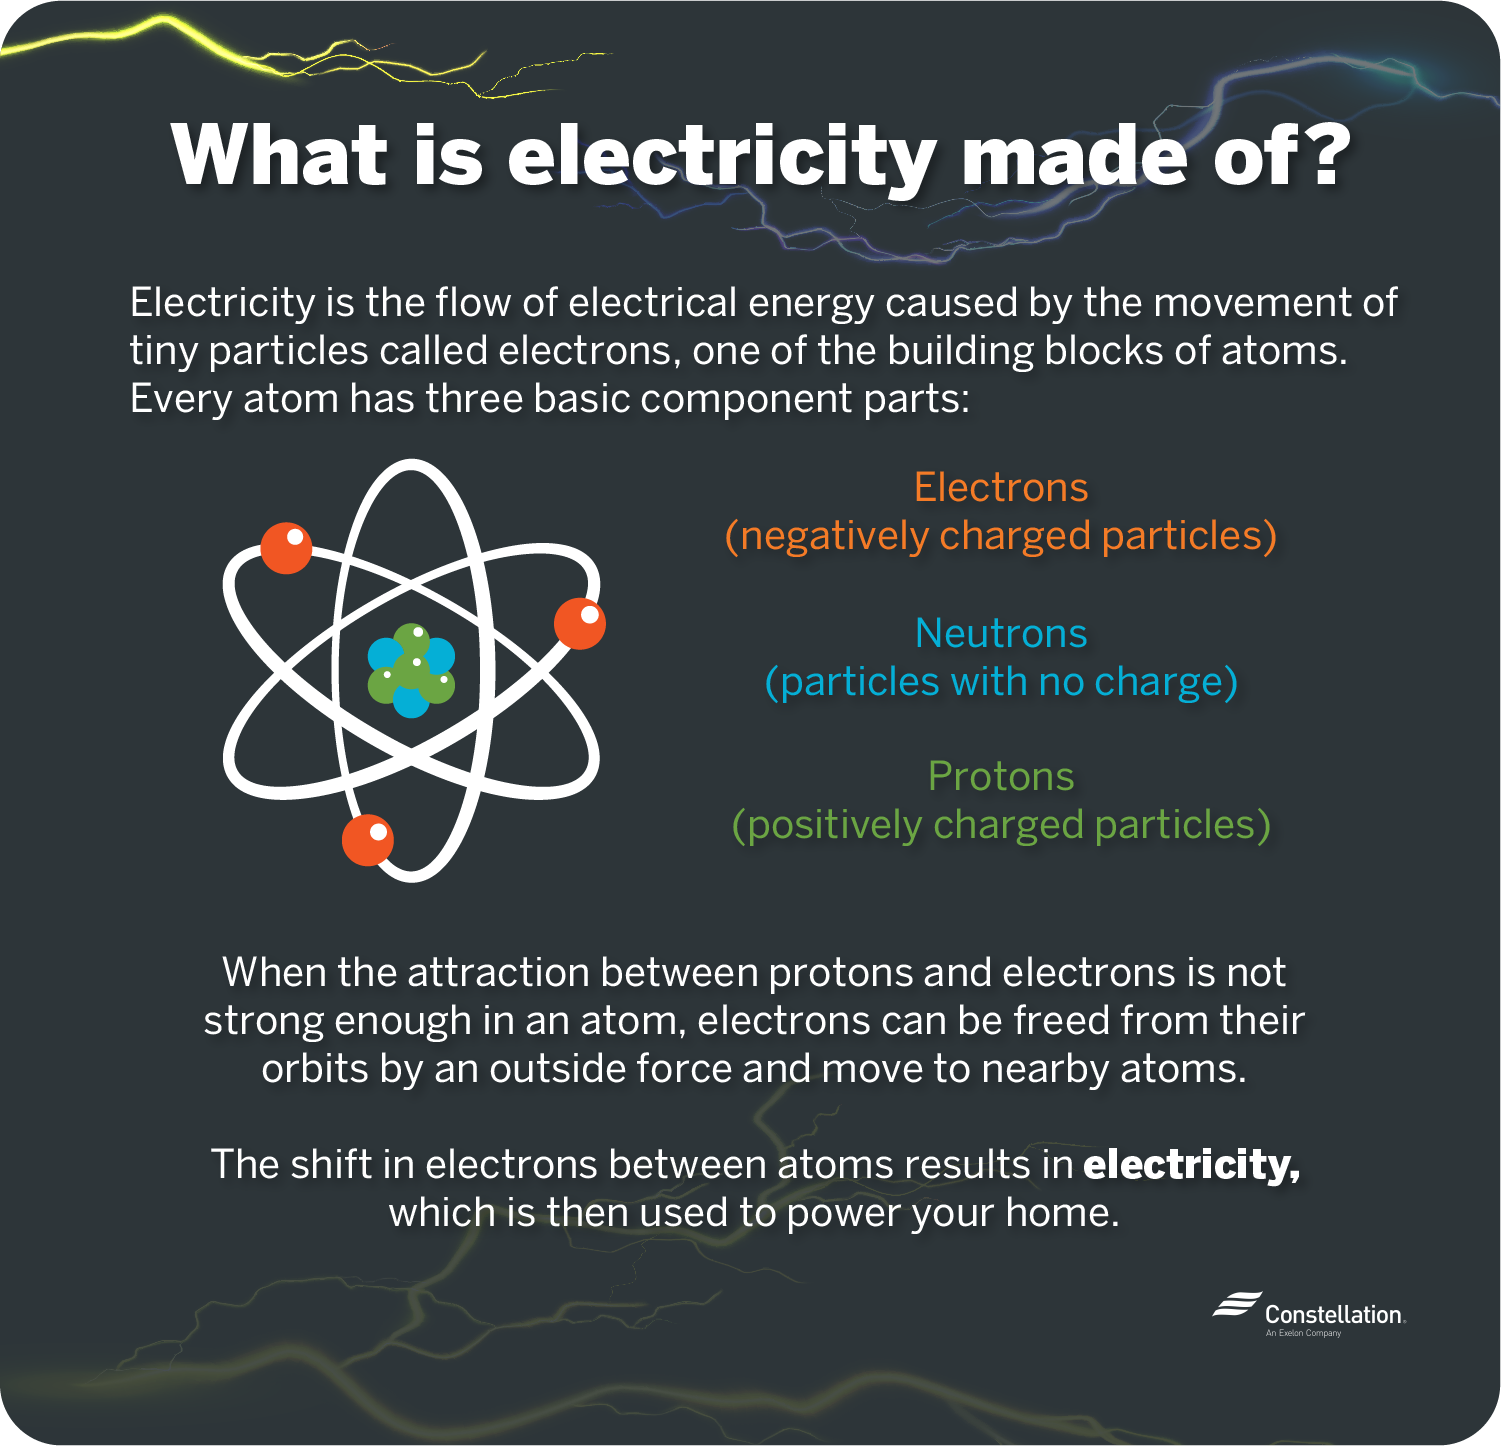 What is electricity made of?